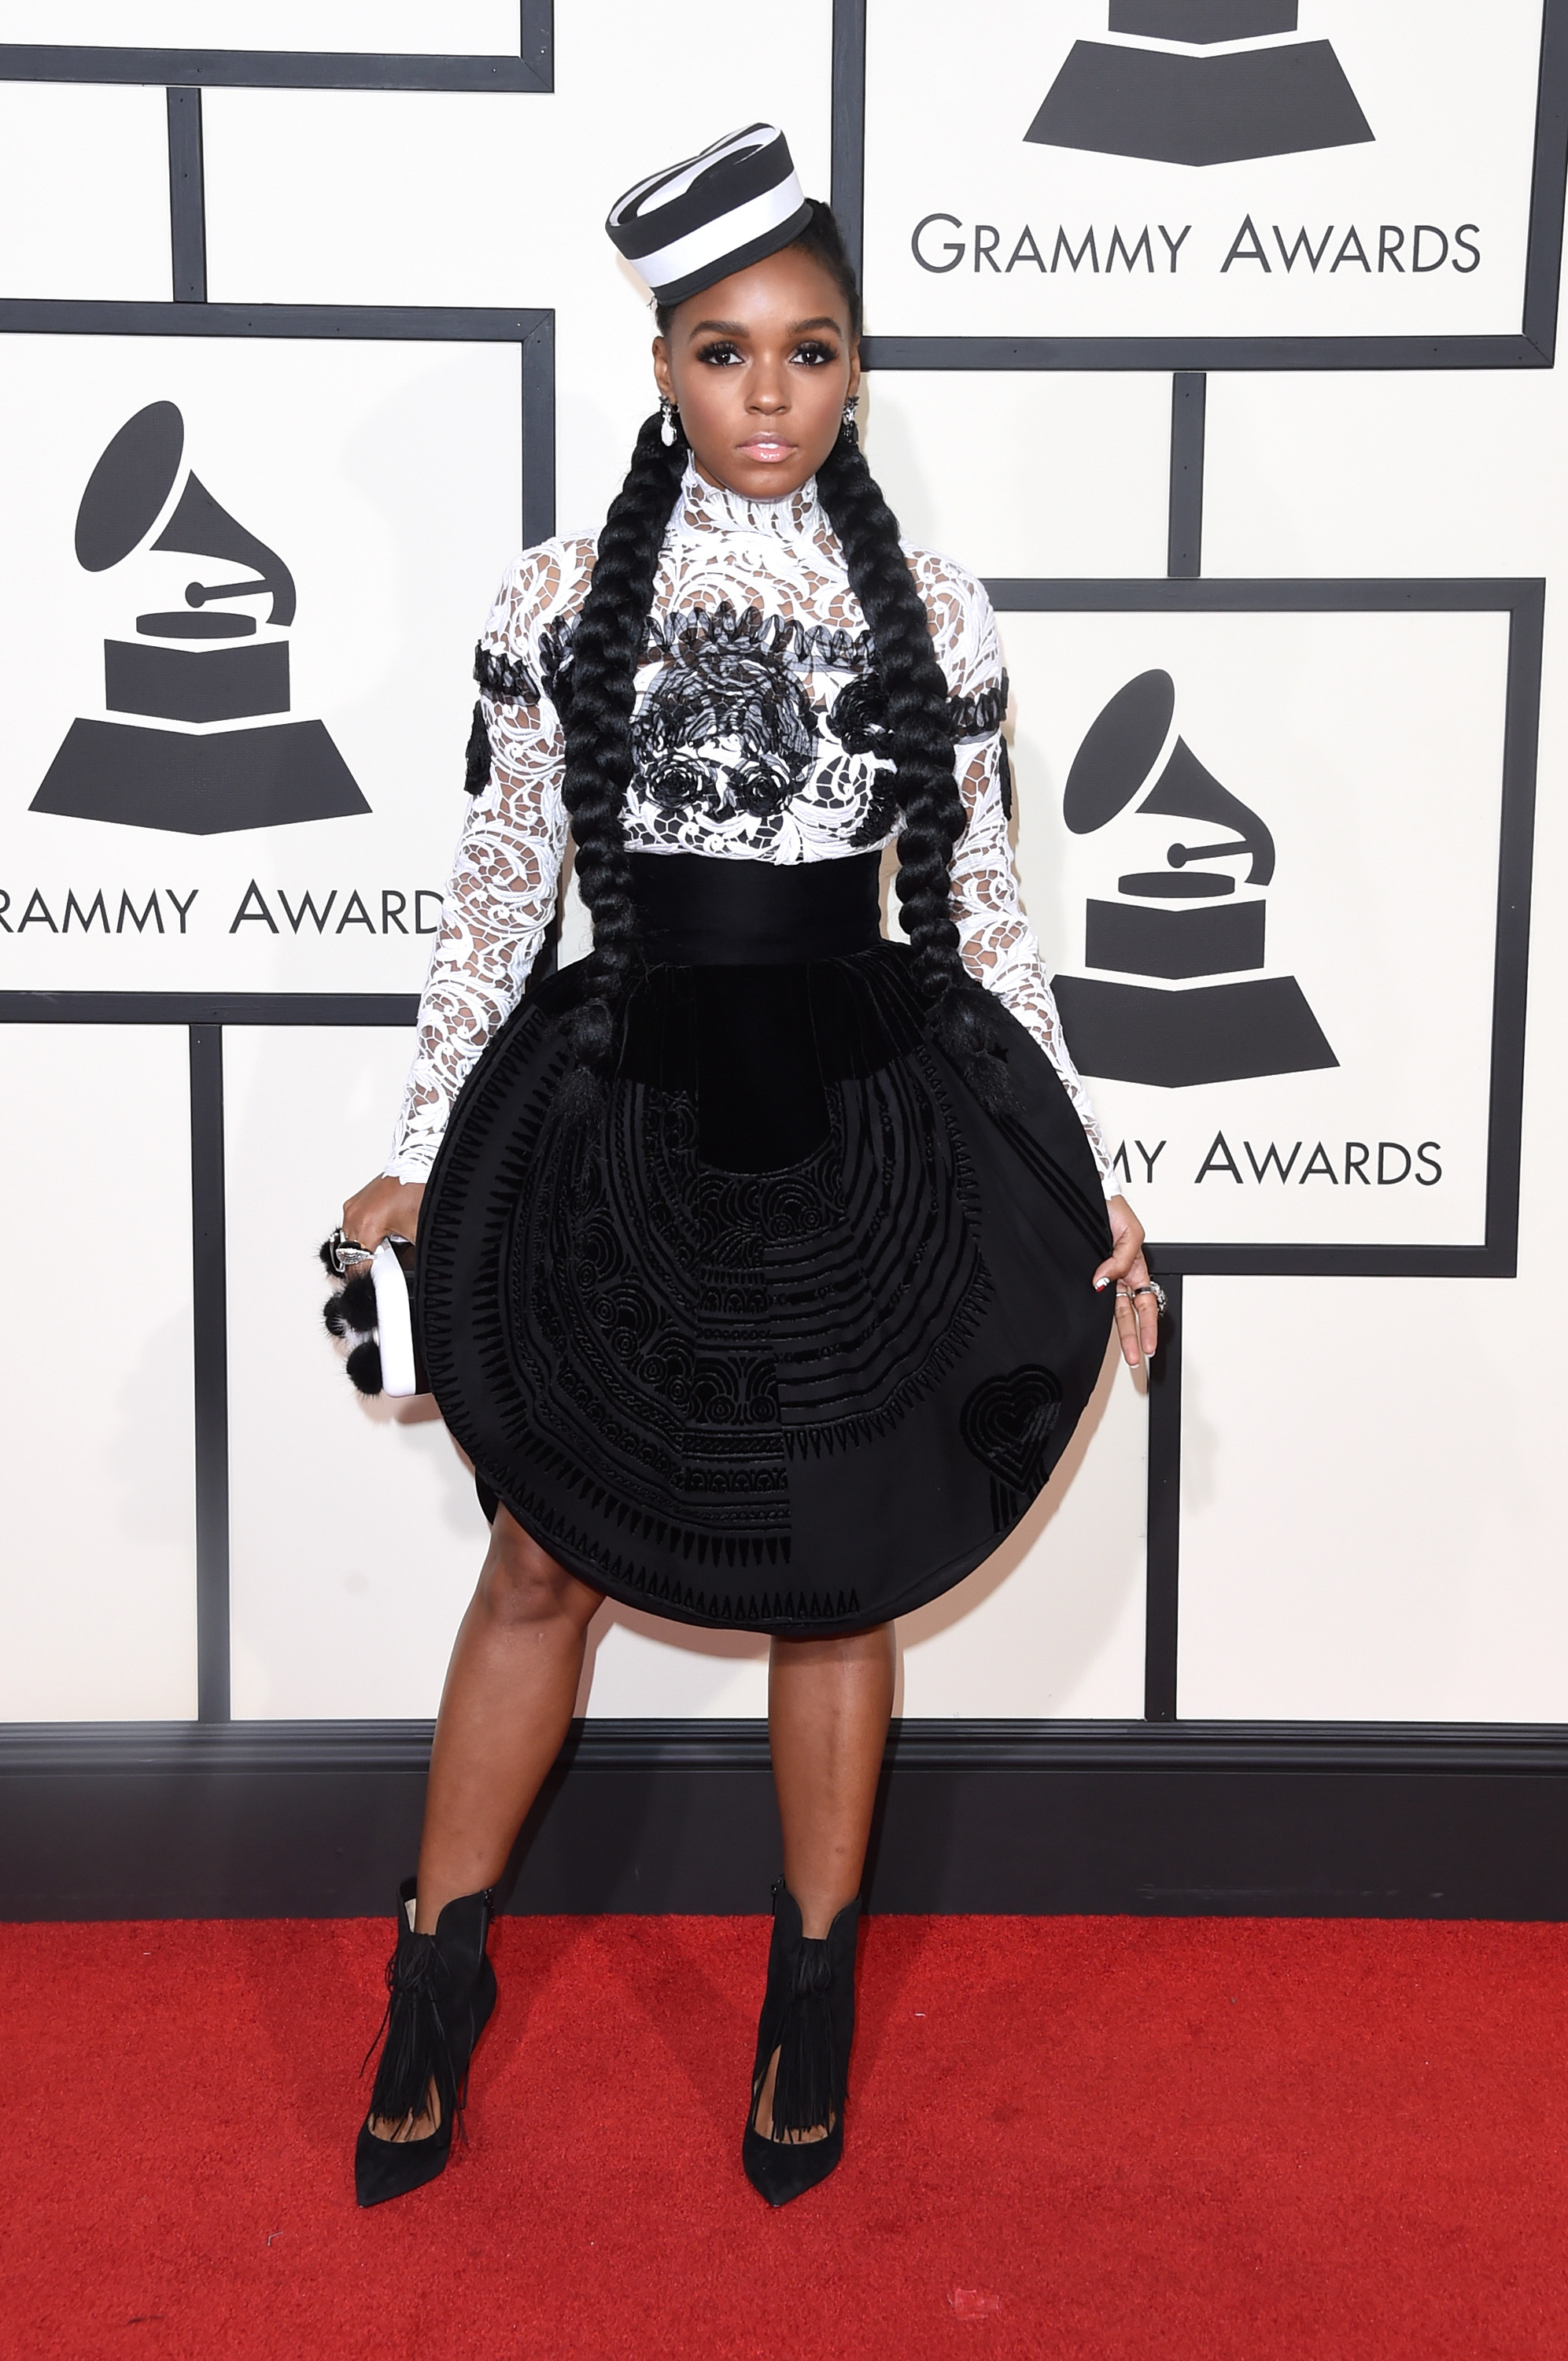 Janelle Monáe attends the 58th GRAMMY Awards at Staples Center on Feb. 15, 2016 in Los Angeles.